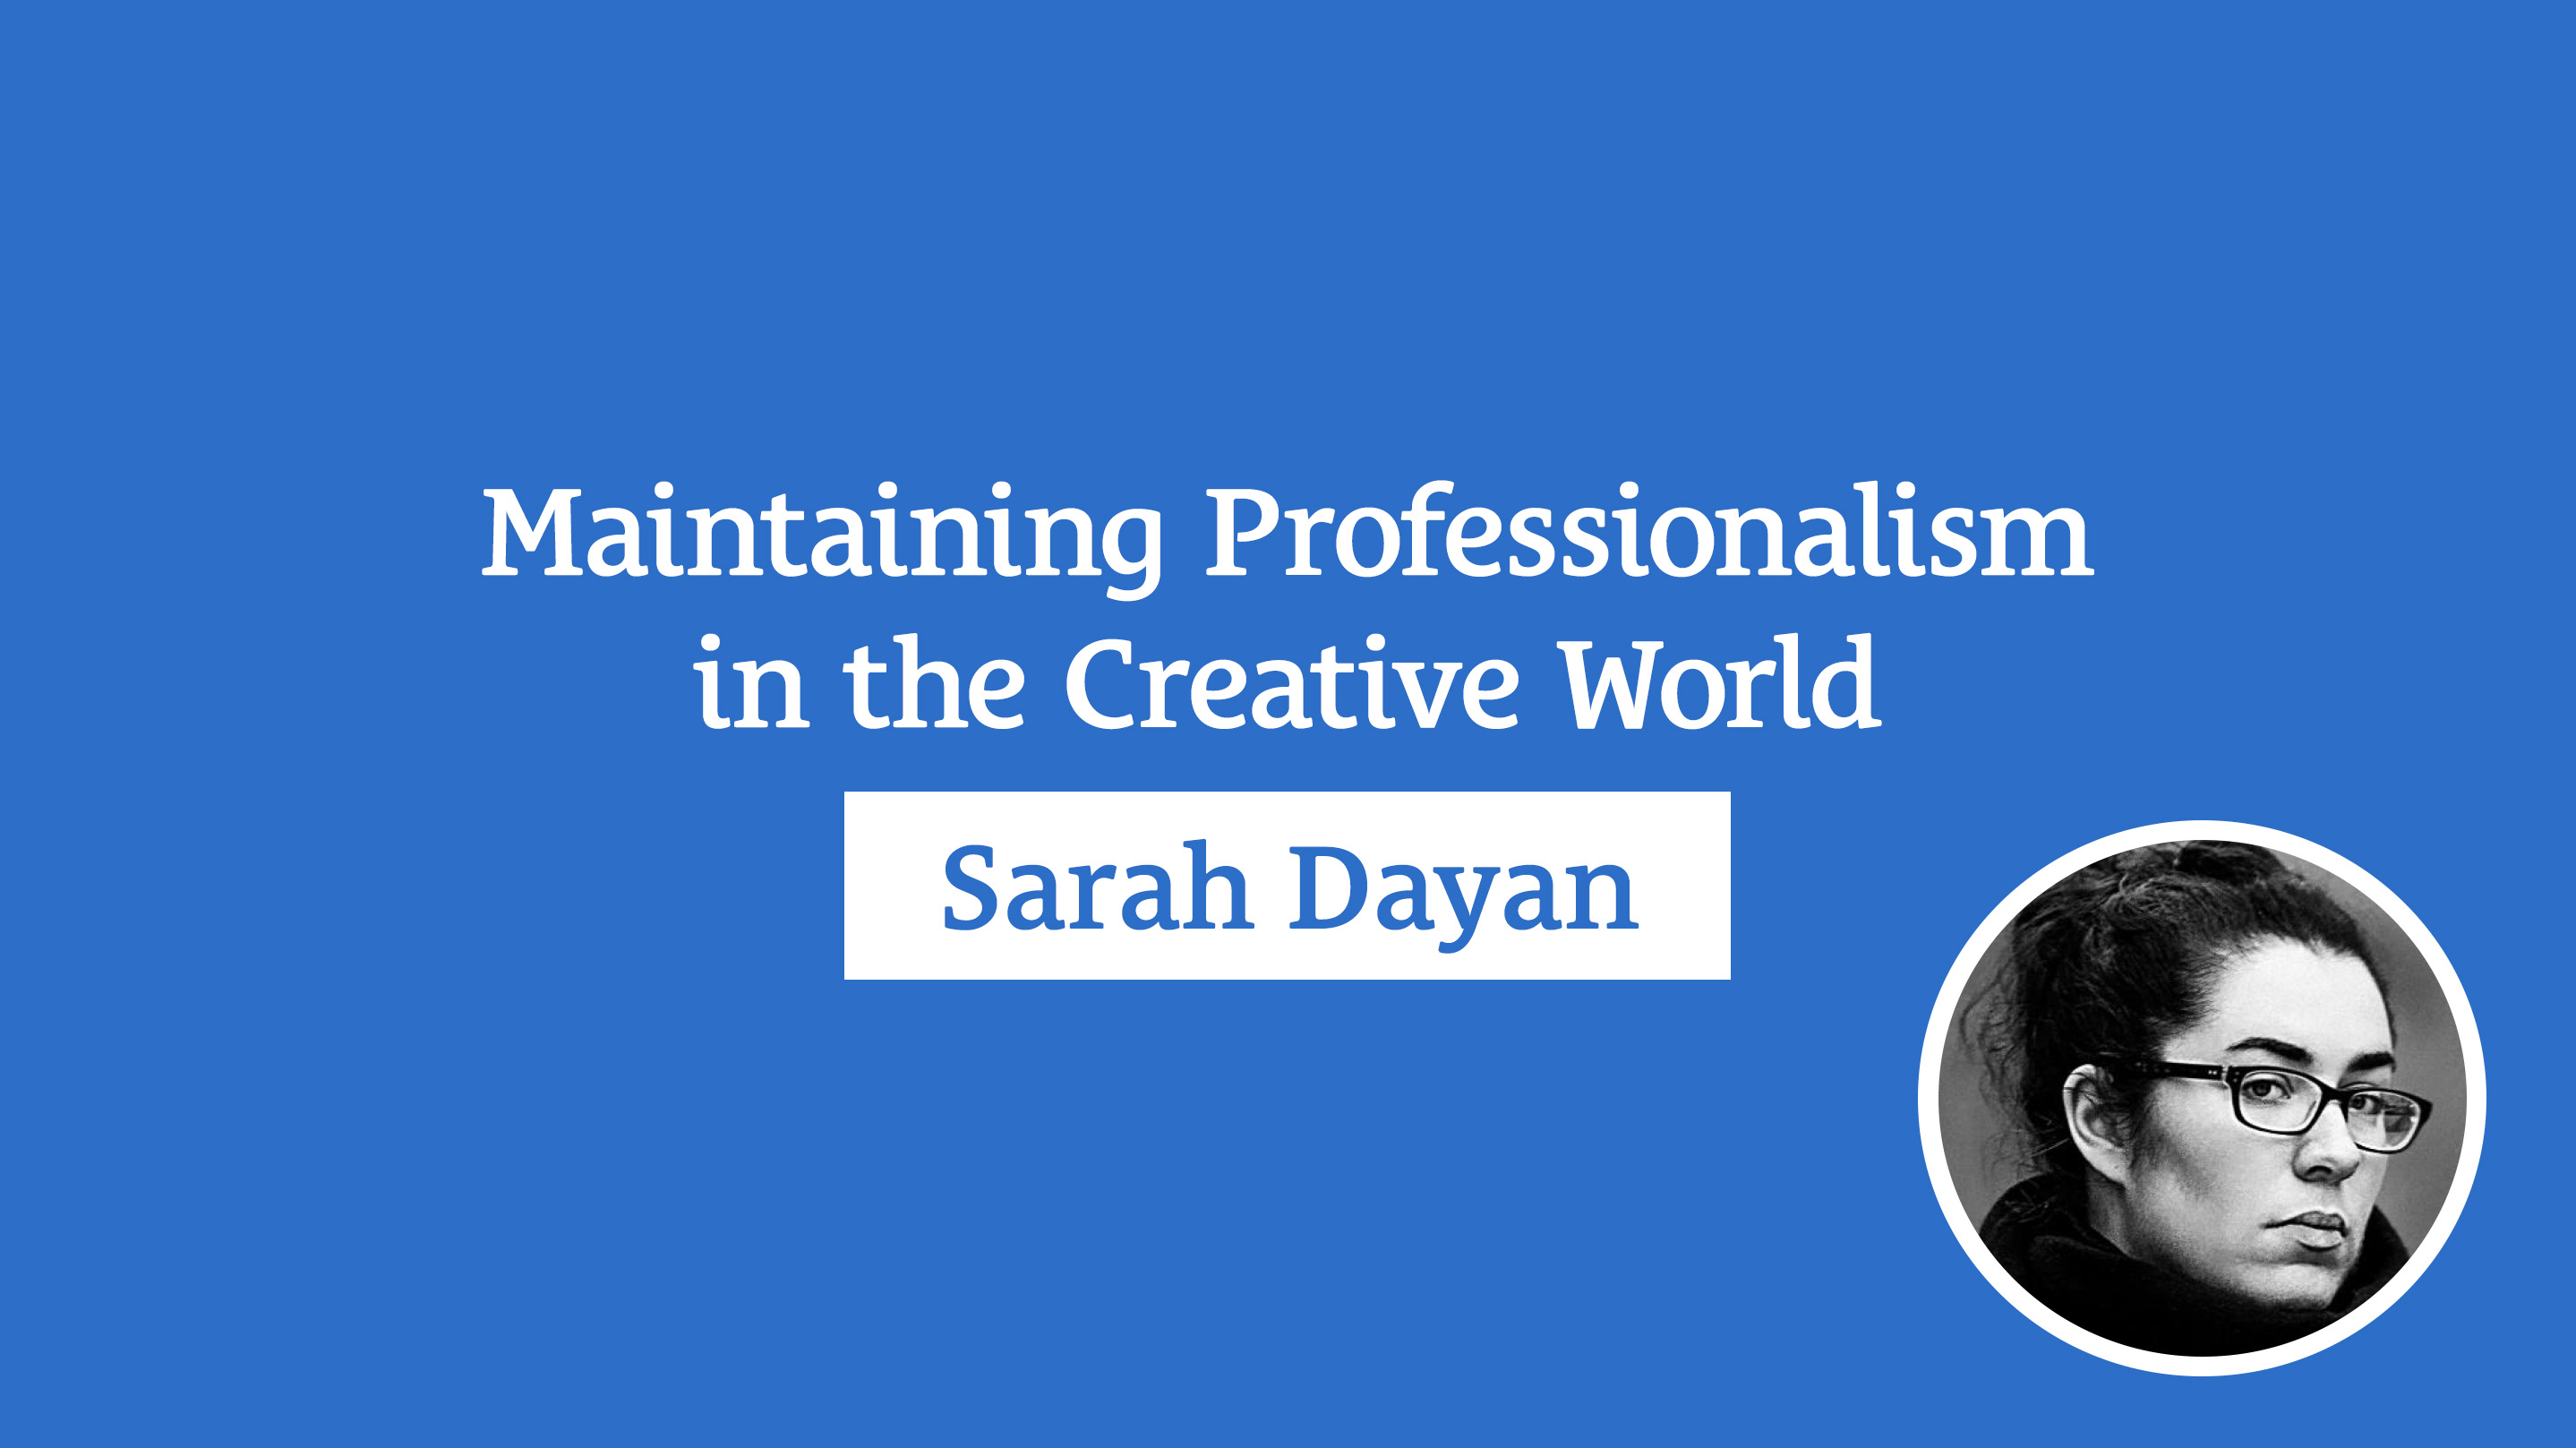 Maintaining Professionalism in the Creative World